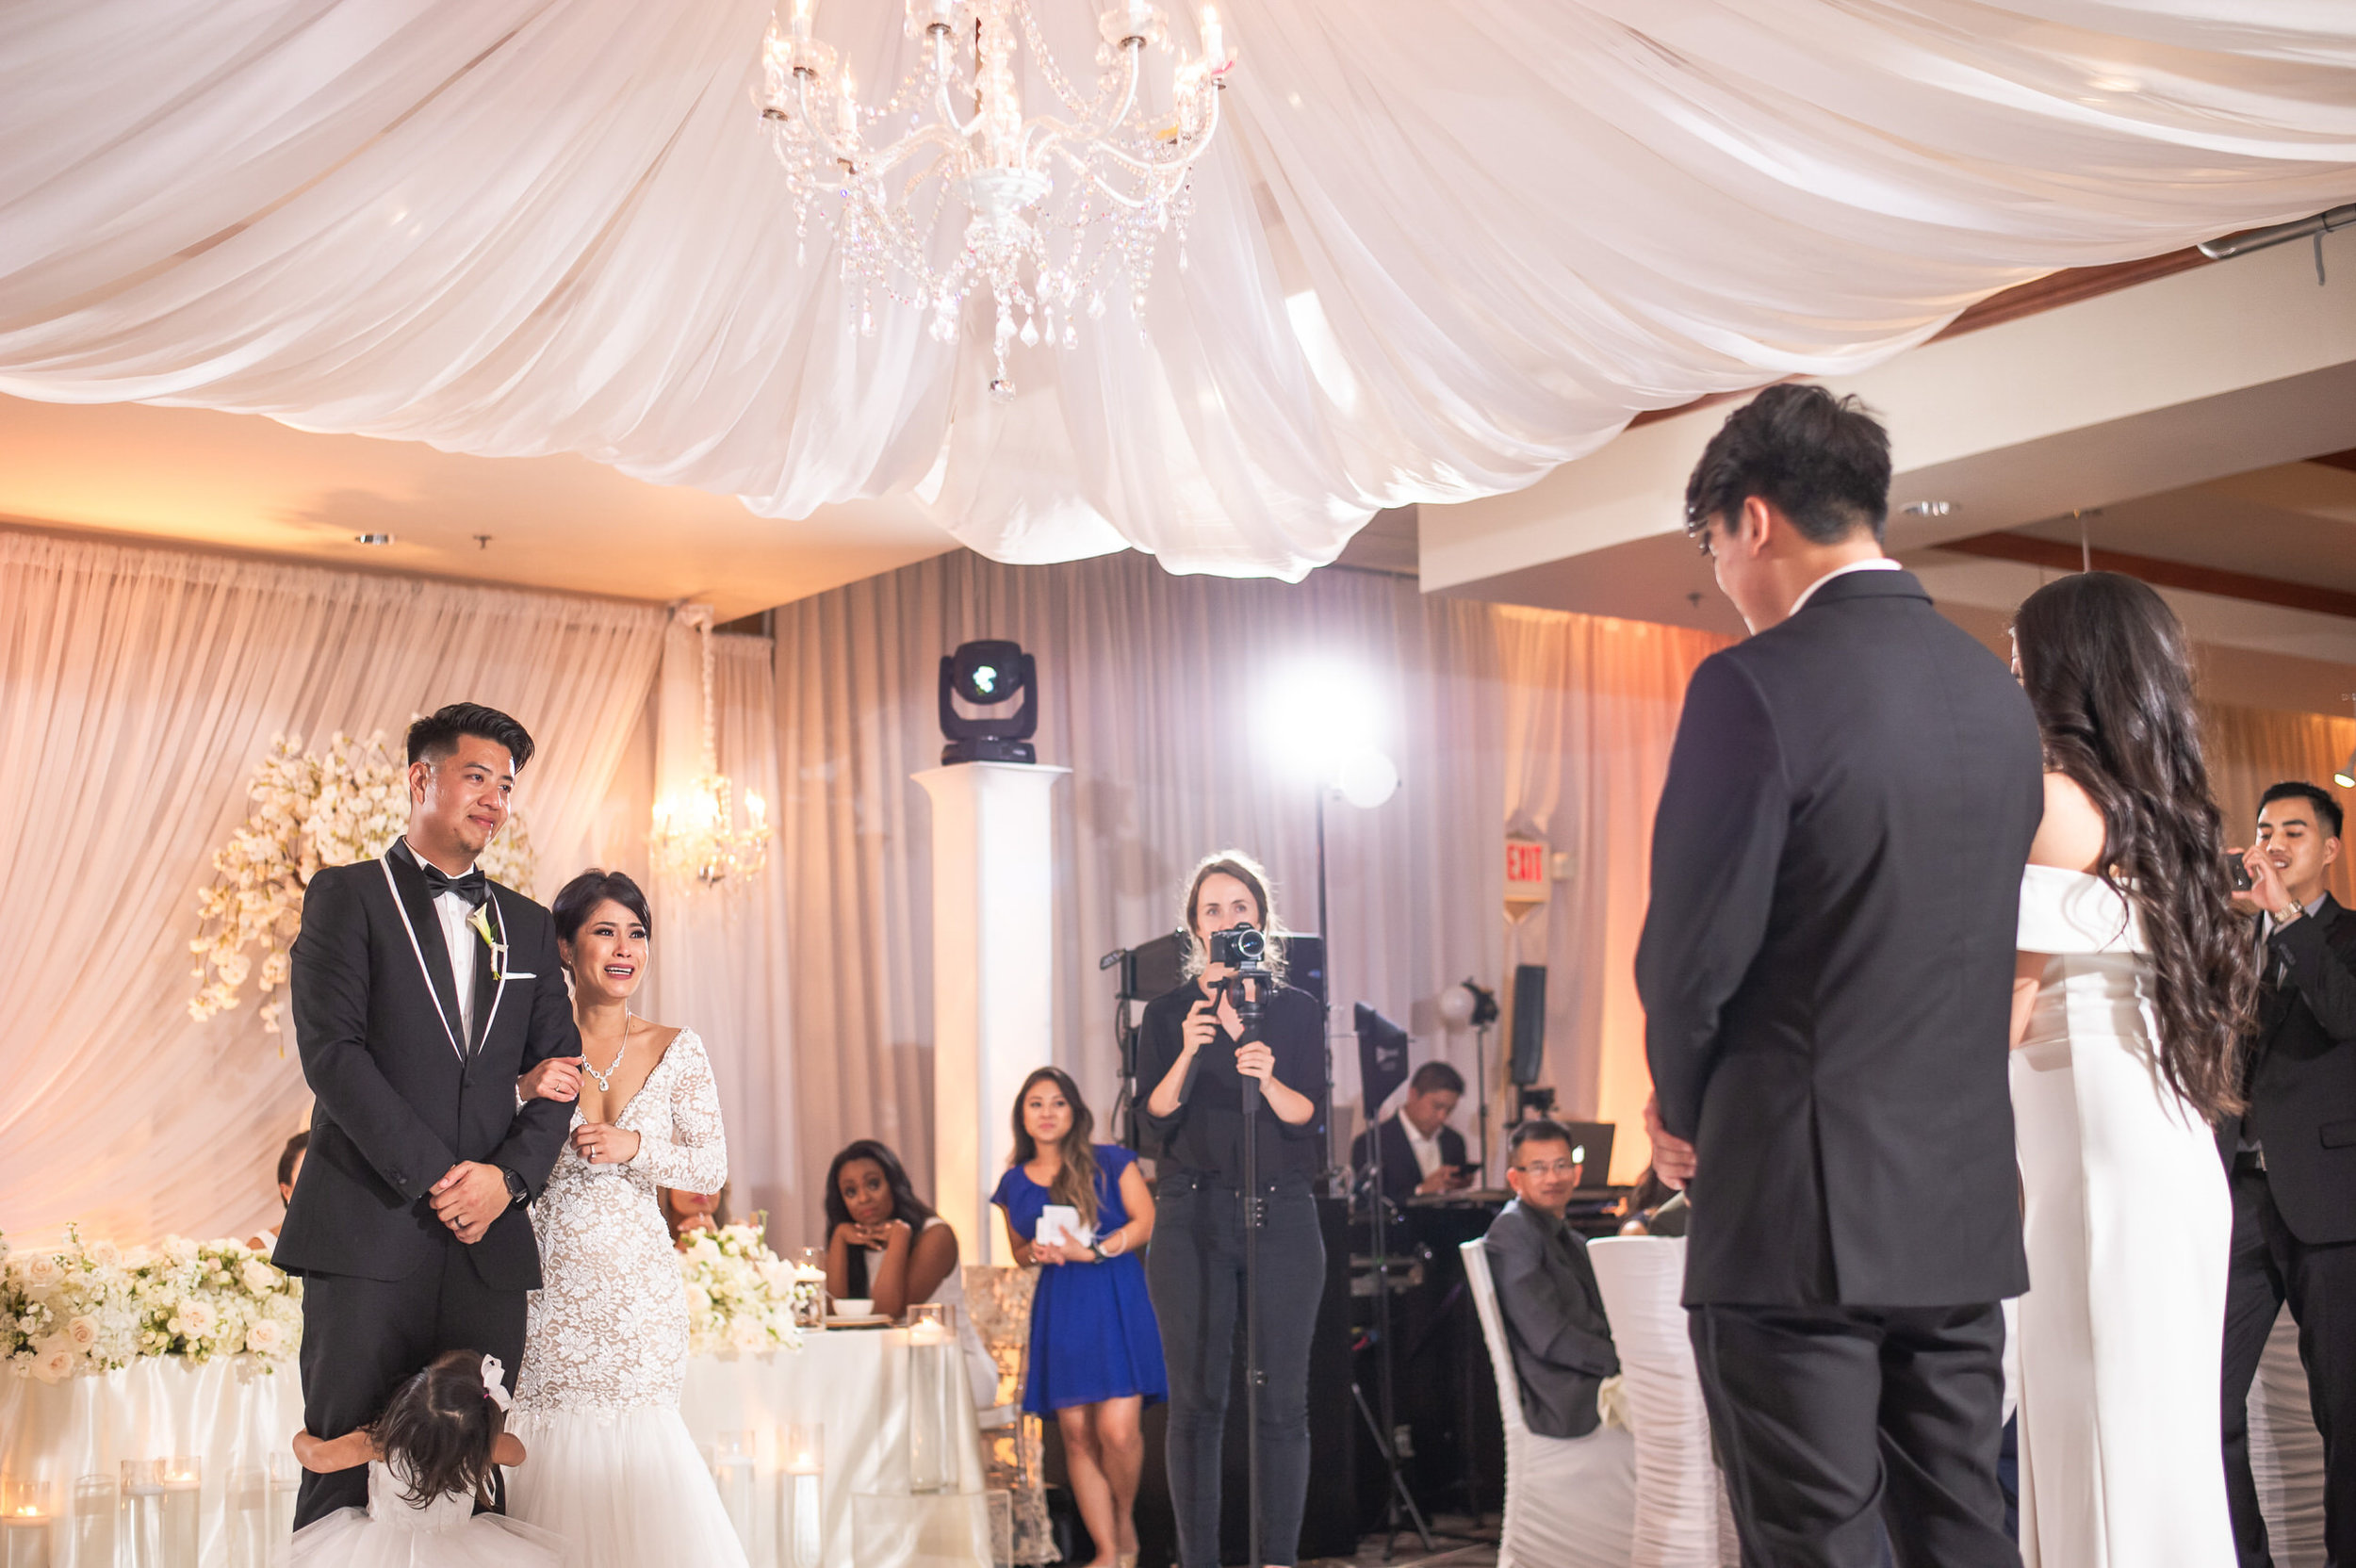 Dream_Wedding_Thanh_Thanh-21202.jpg